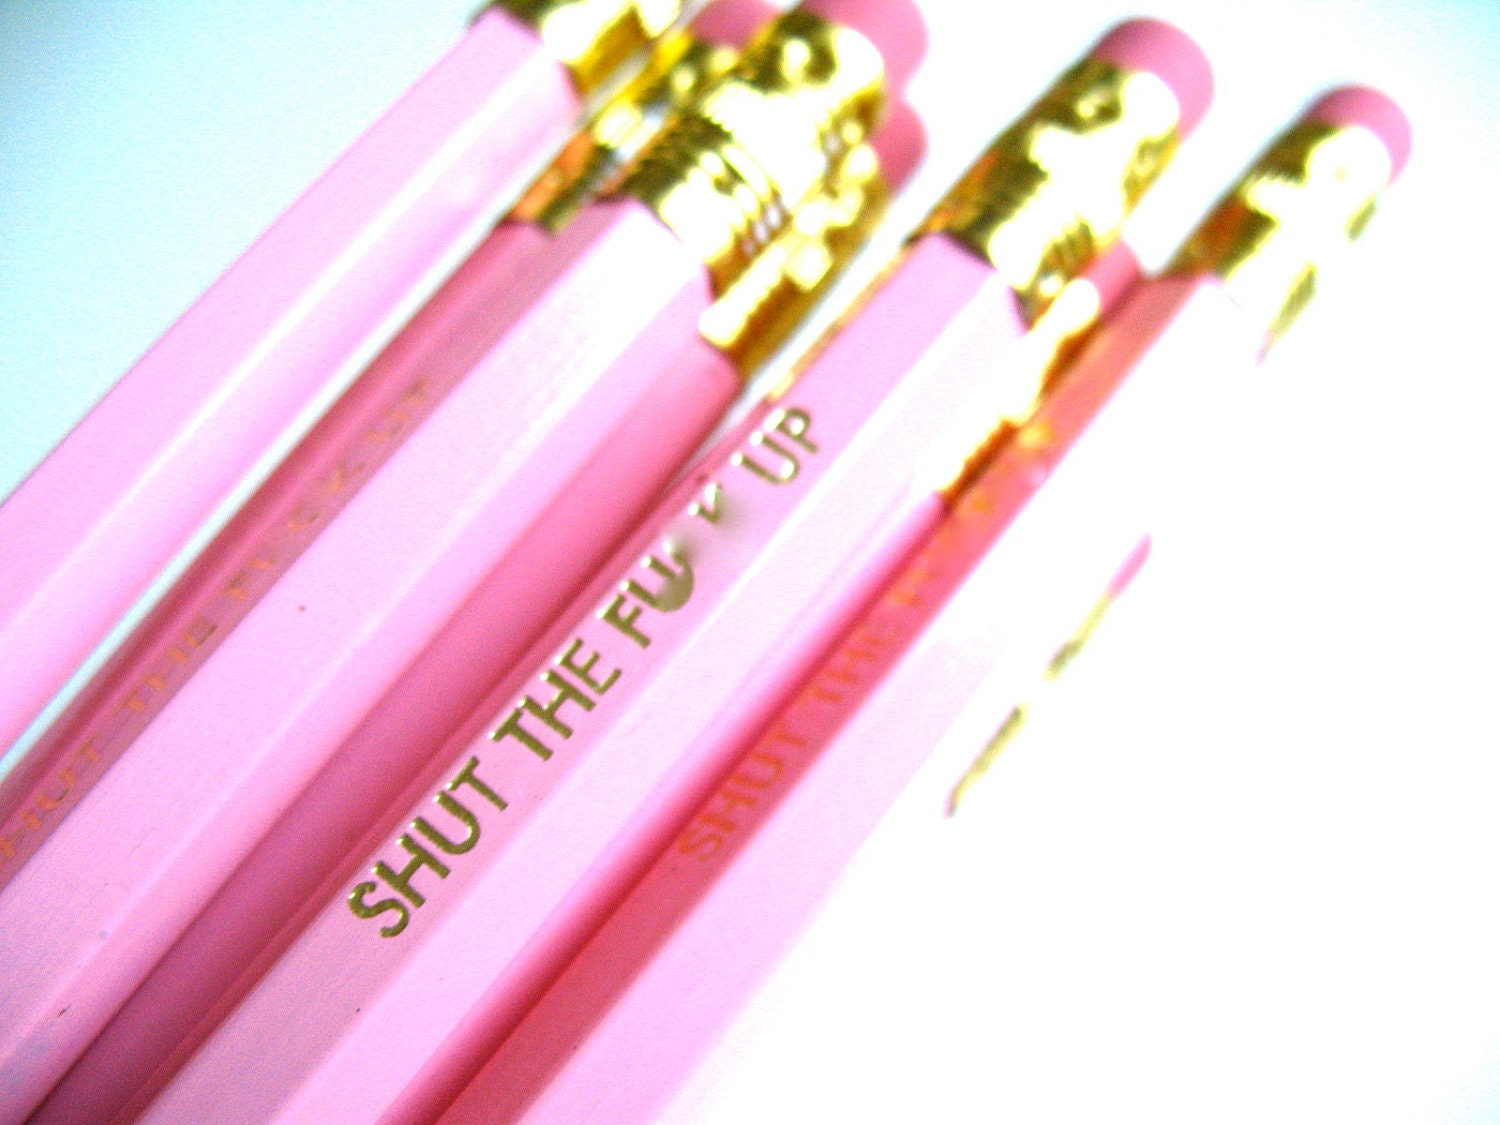 6 Pencils Light Pink Shut The Fxck Up Funny By Thebigharumph